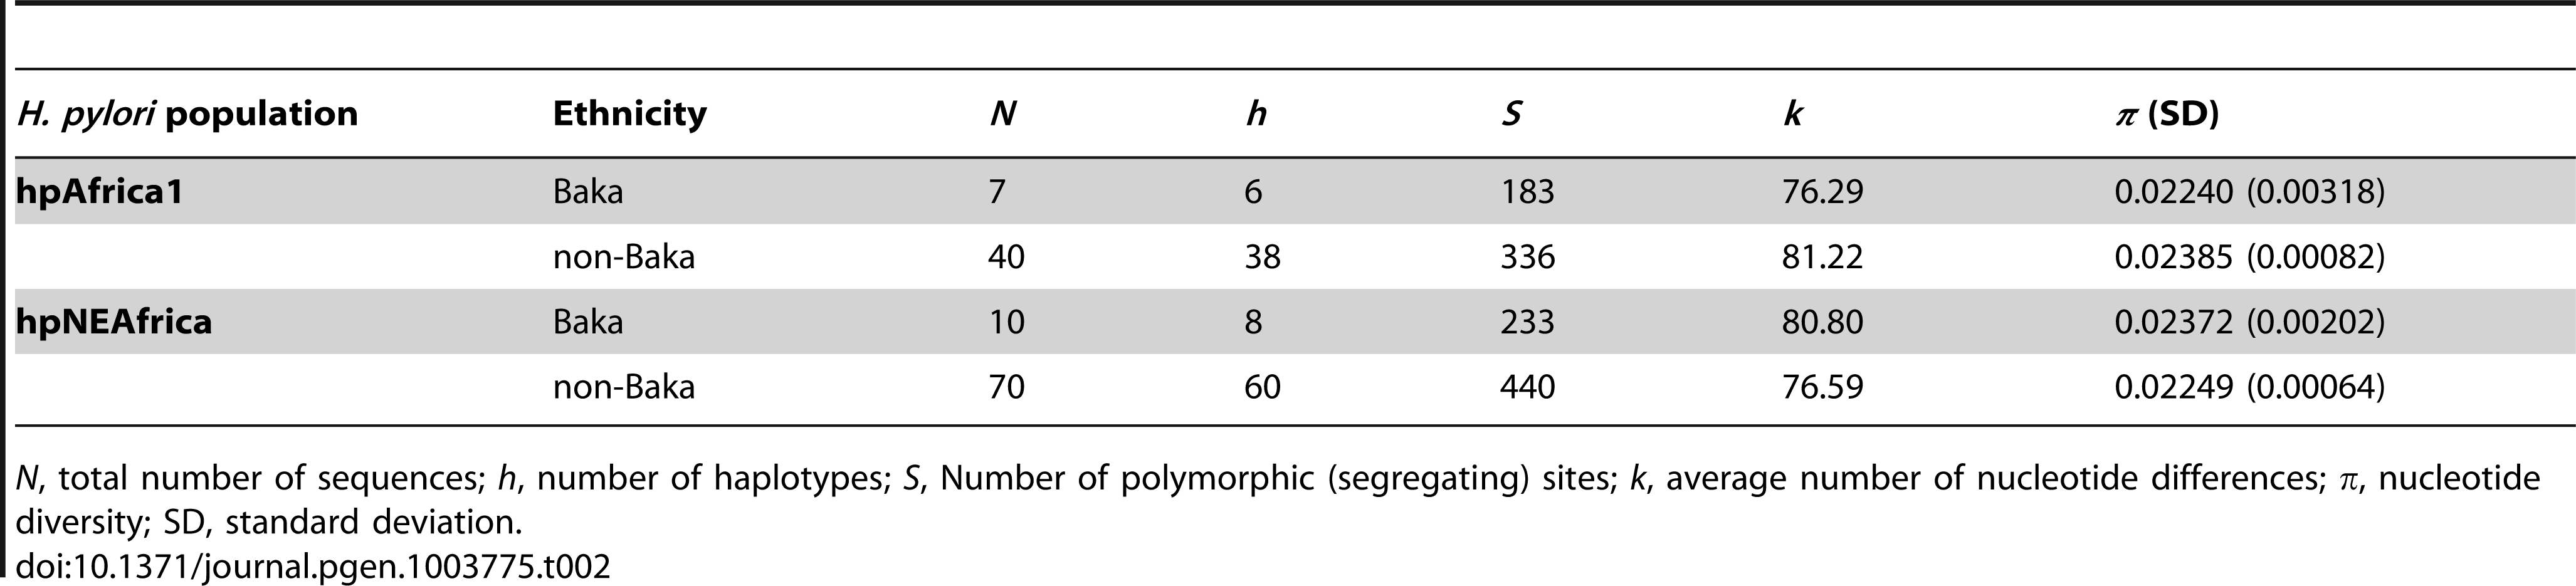 Genetic diversity of hpAfrica1 and hpNEAfrica haplotypes isolated from Baka Pygmies and non-Baka agriculturalists.